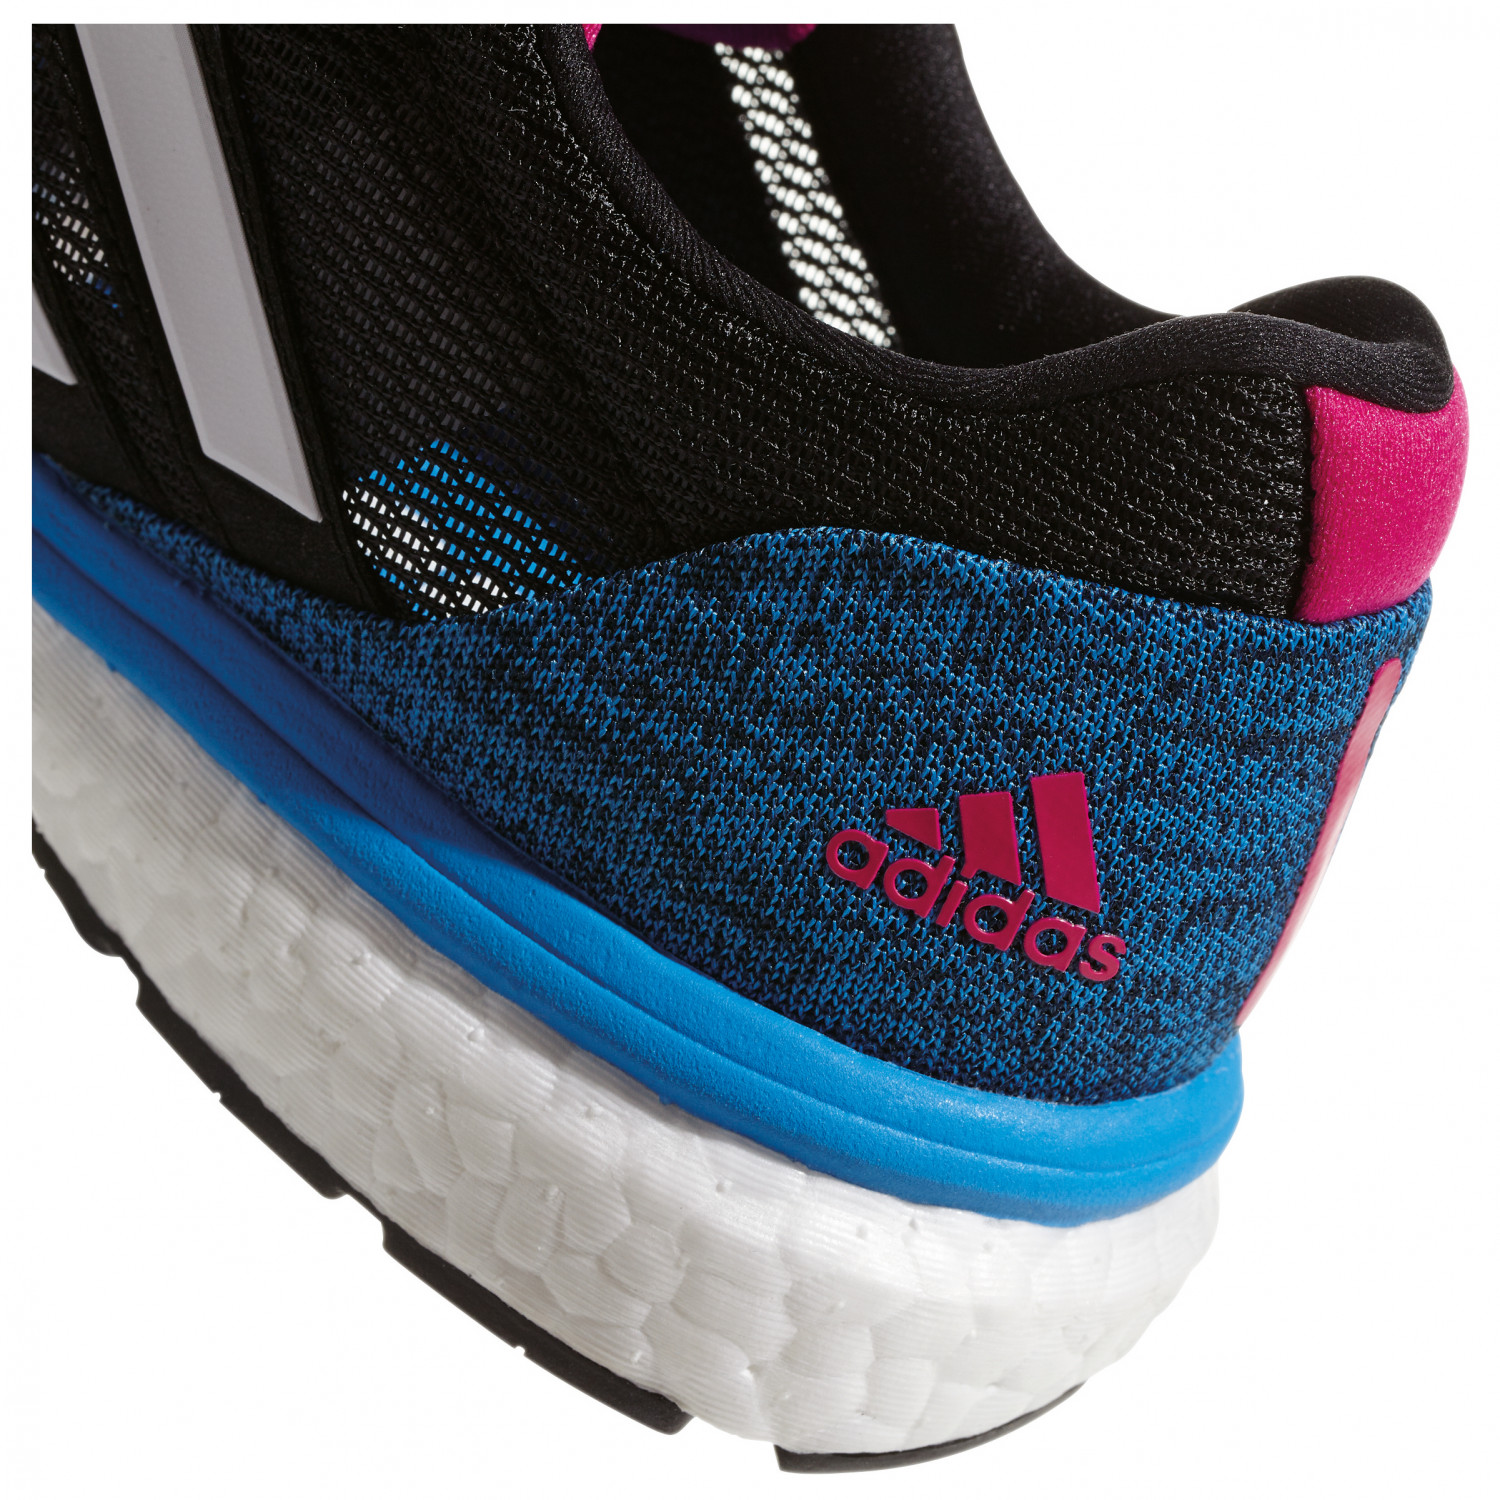 9148d1ceea4af1 ... adidas - Women s Adizero Boston 7 - Running shoes ...